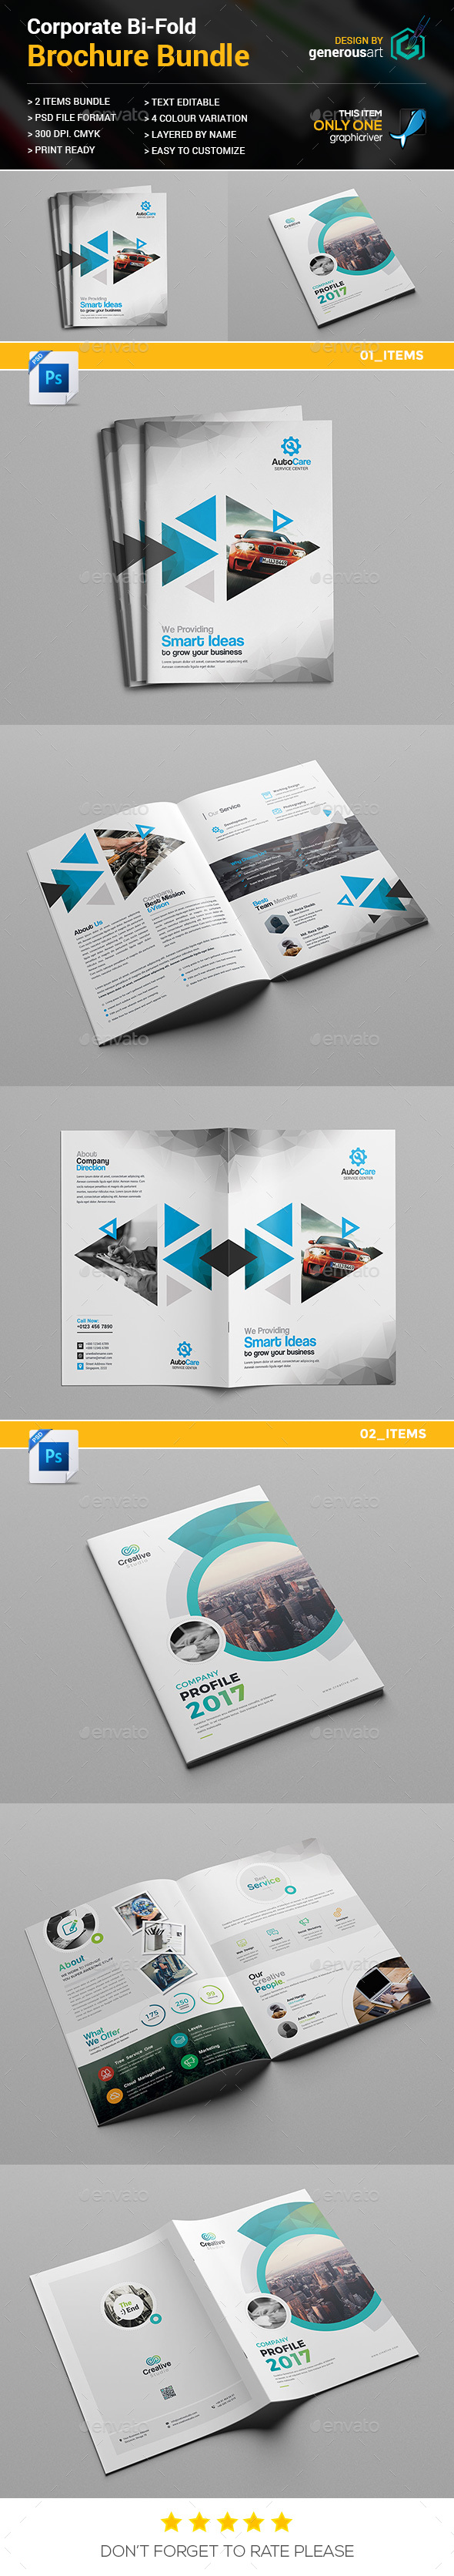 Bi-Fold Brochure Bundle 2 in 1 - Brochures Print Templates